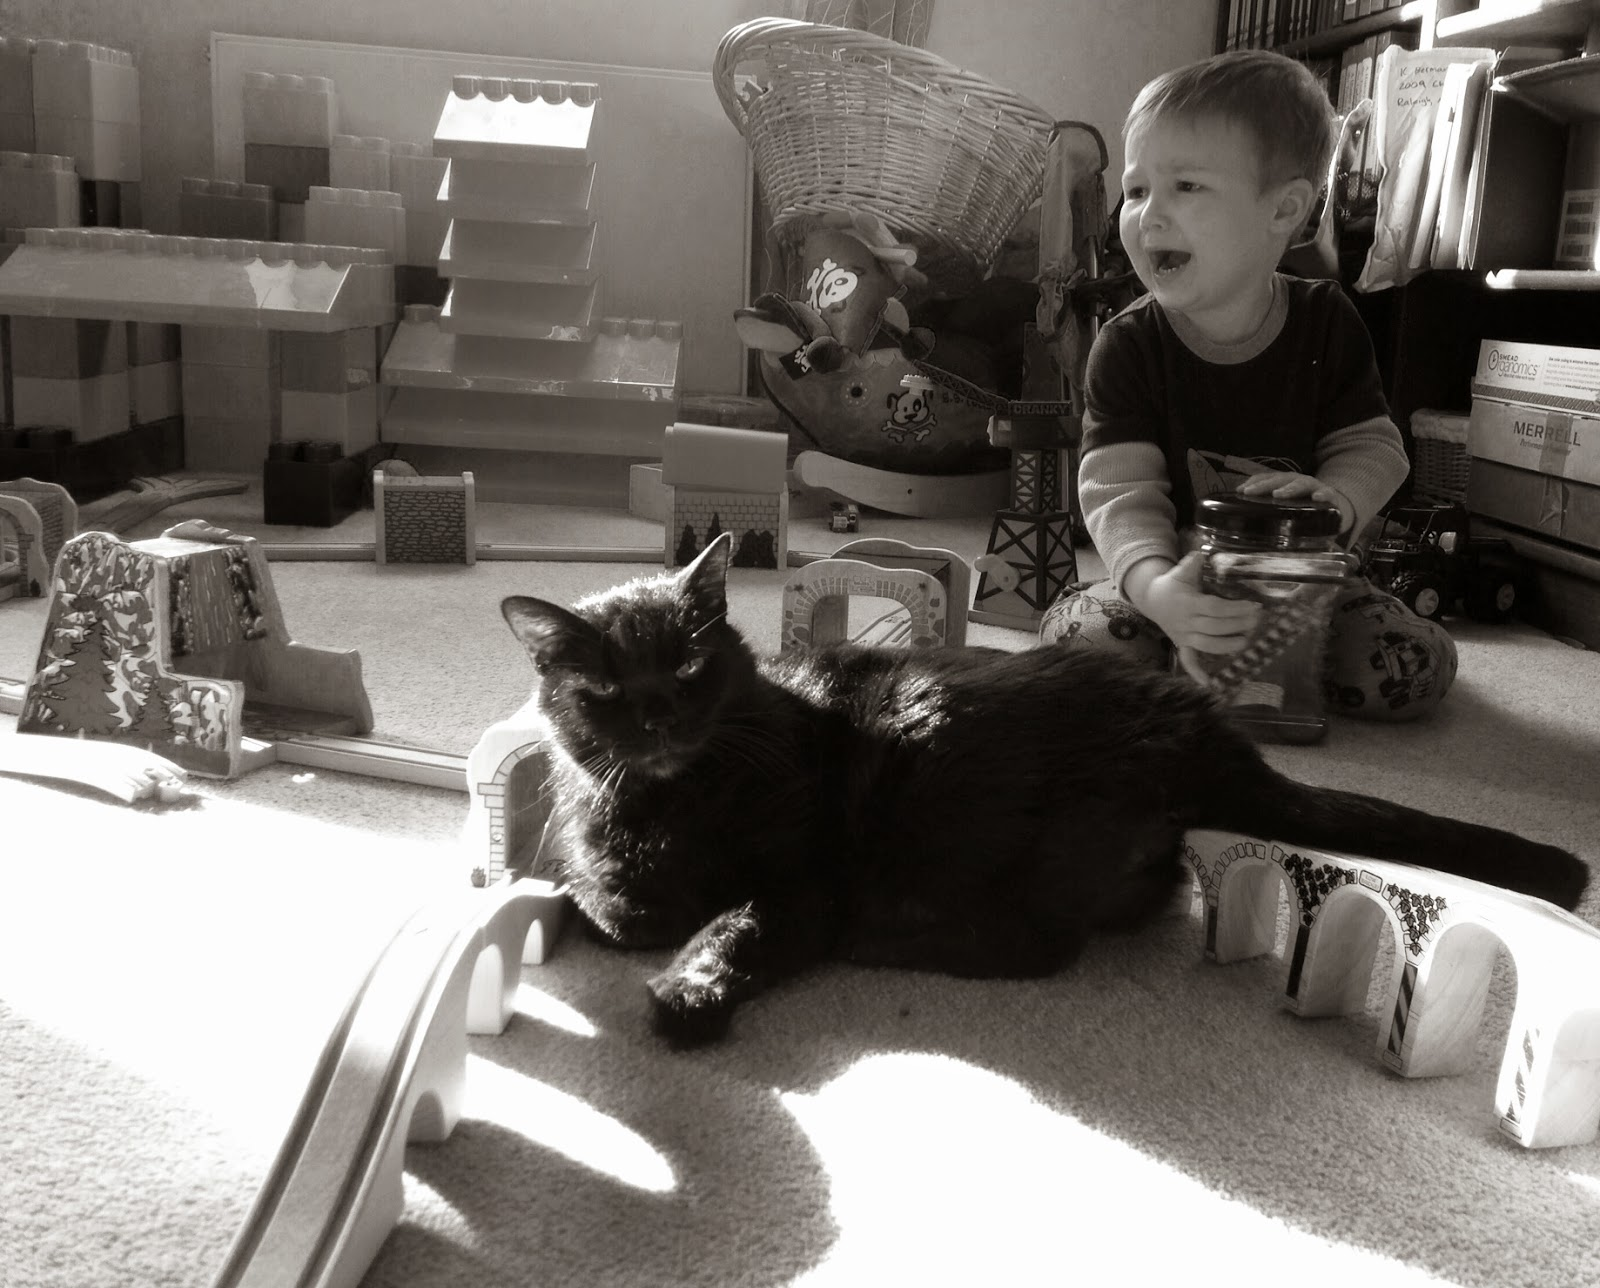 http://www.coloringwithoutborders.com/2014/04/a-boy-and-his-cat.html